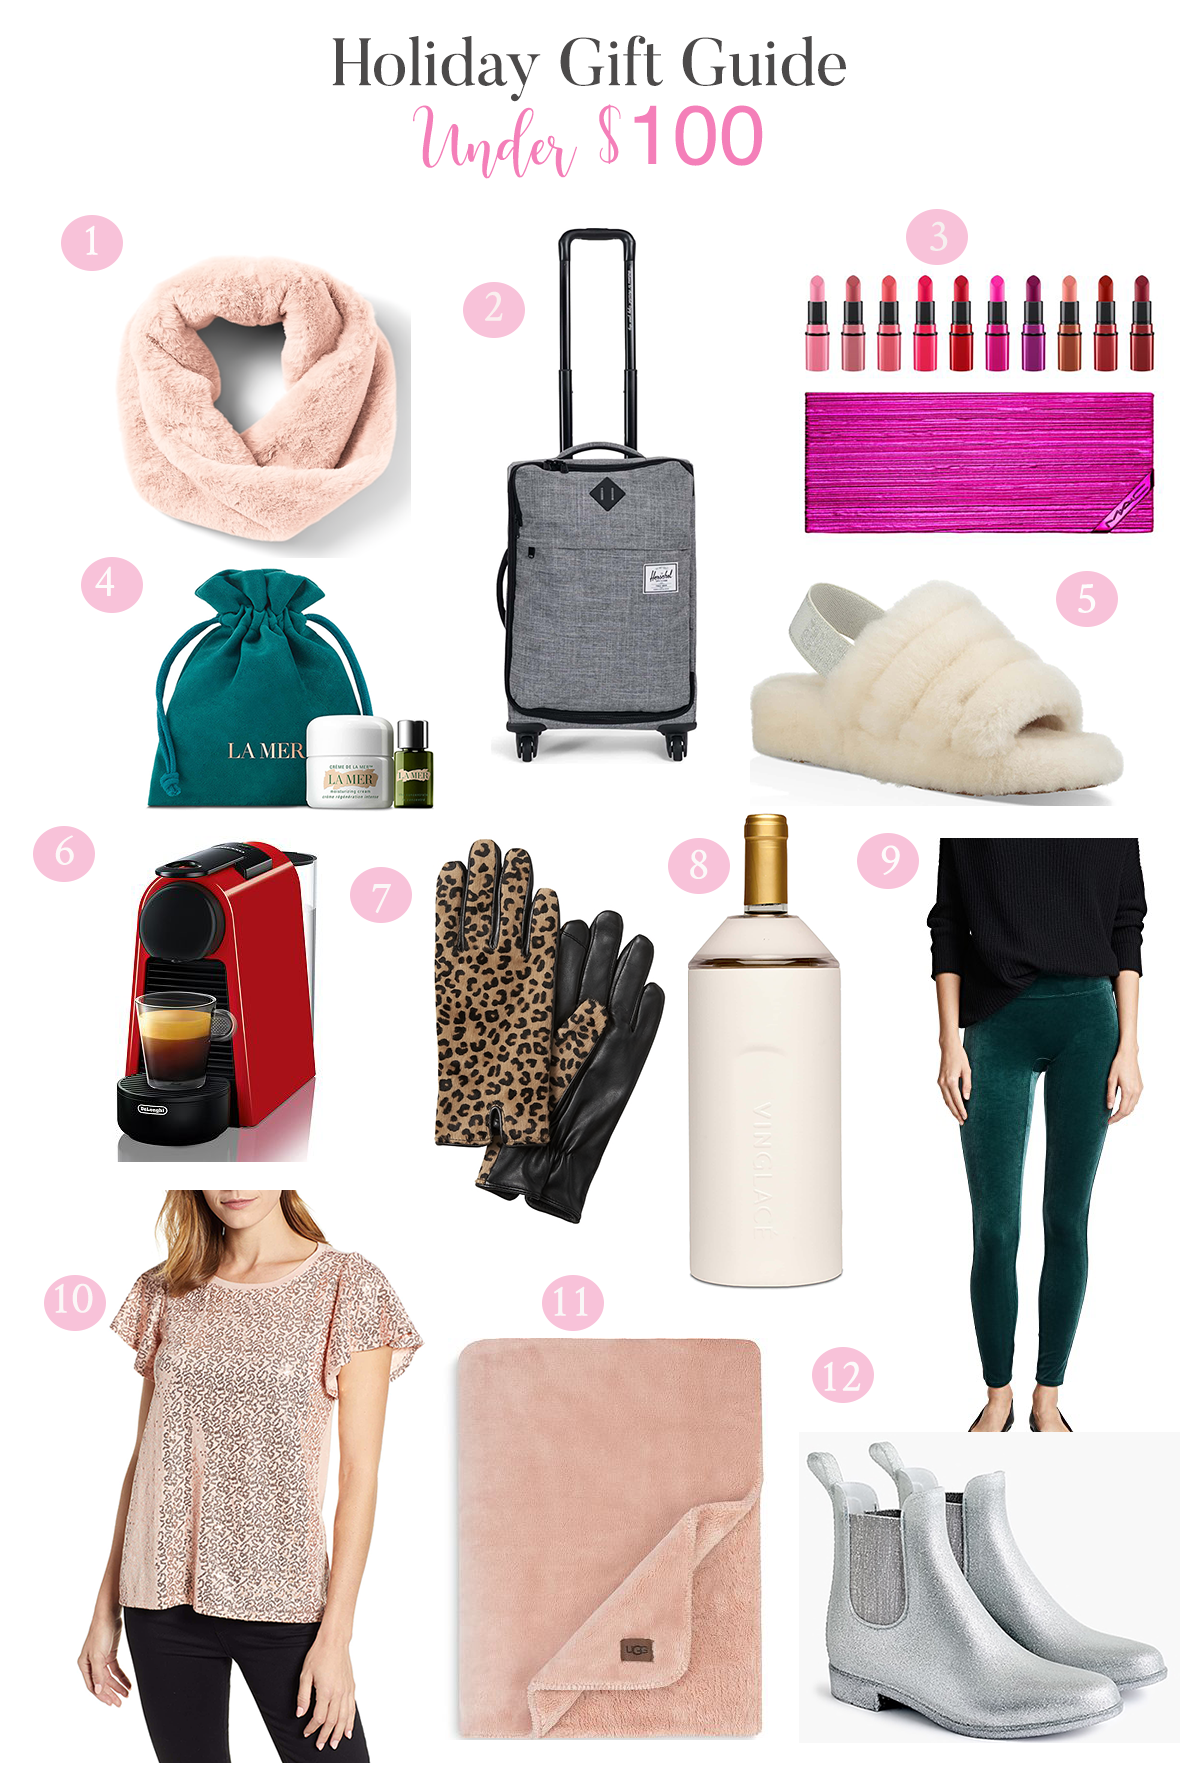 Look - Inspiration: Fashion Kate Spade Holiday Gift Guide video